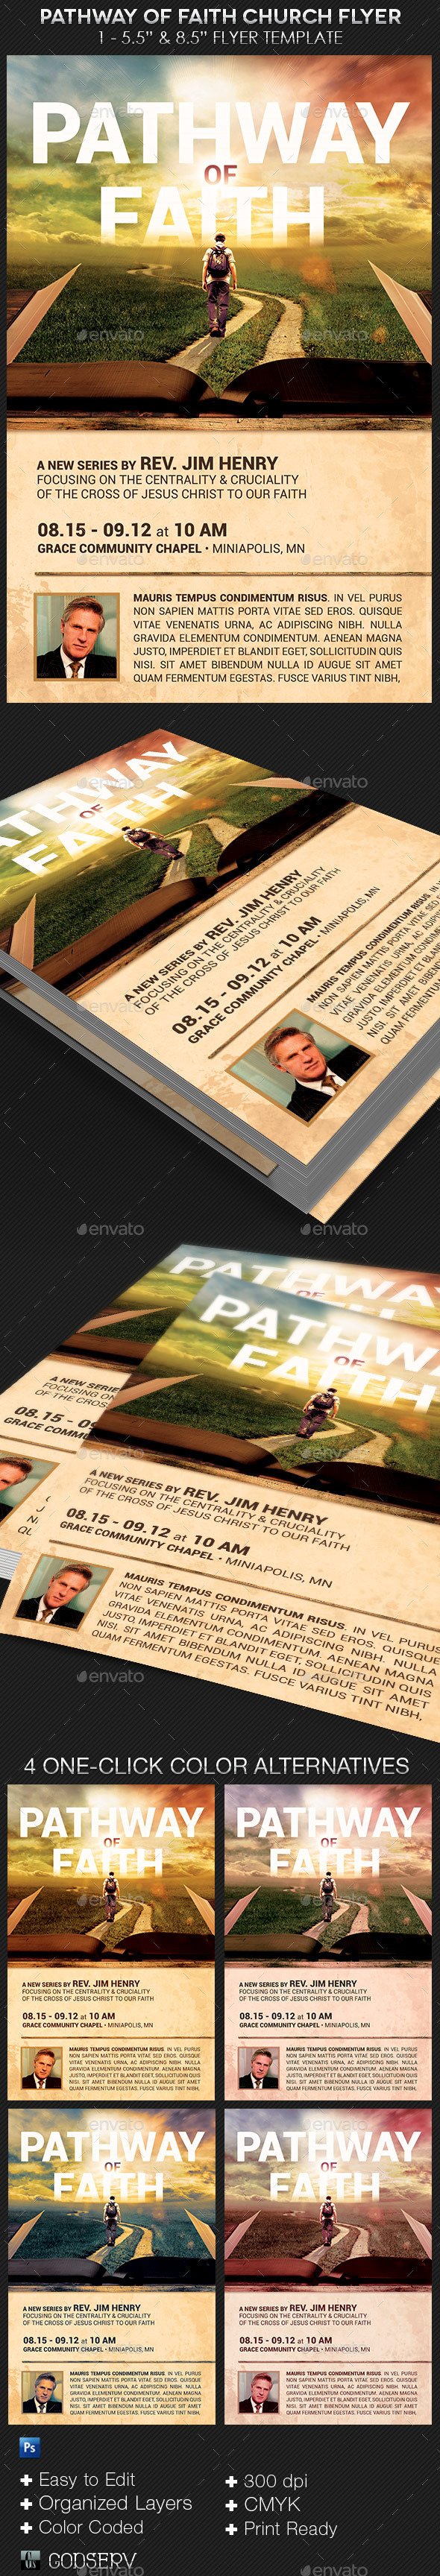 Faith Pathway Church Flyer Template - Church Flyers